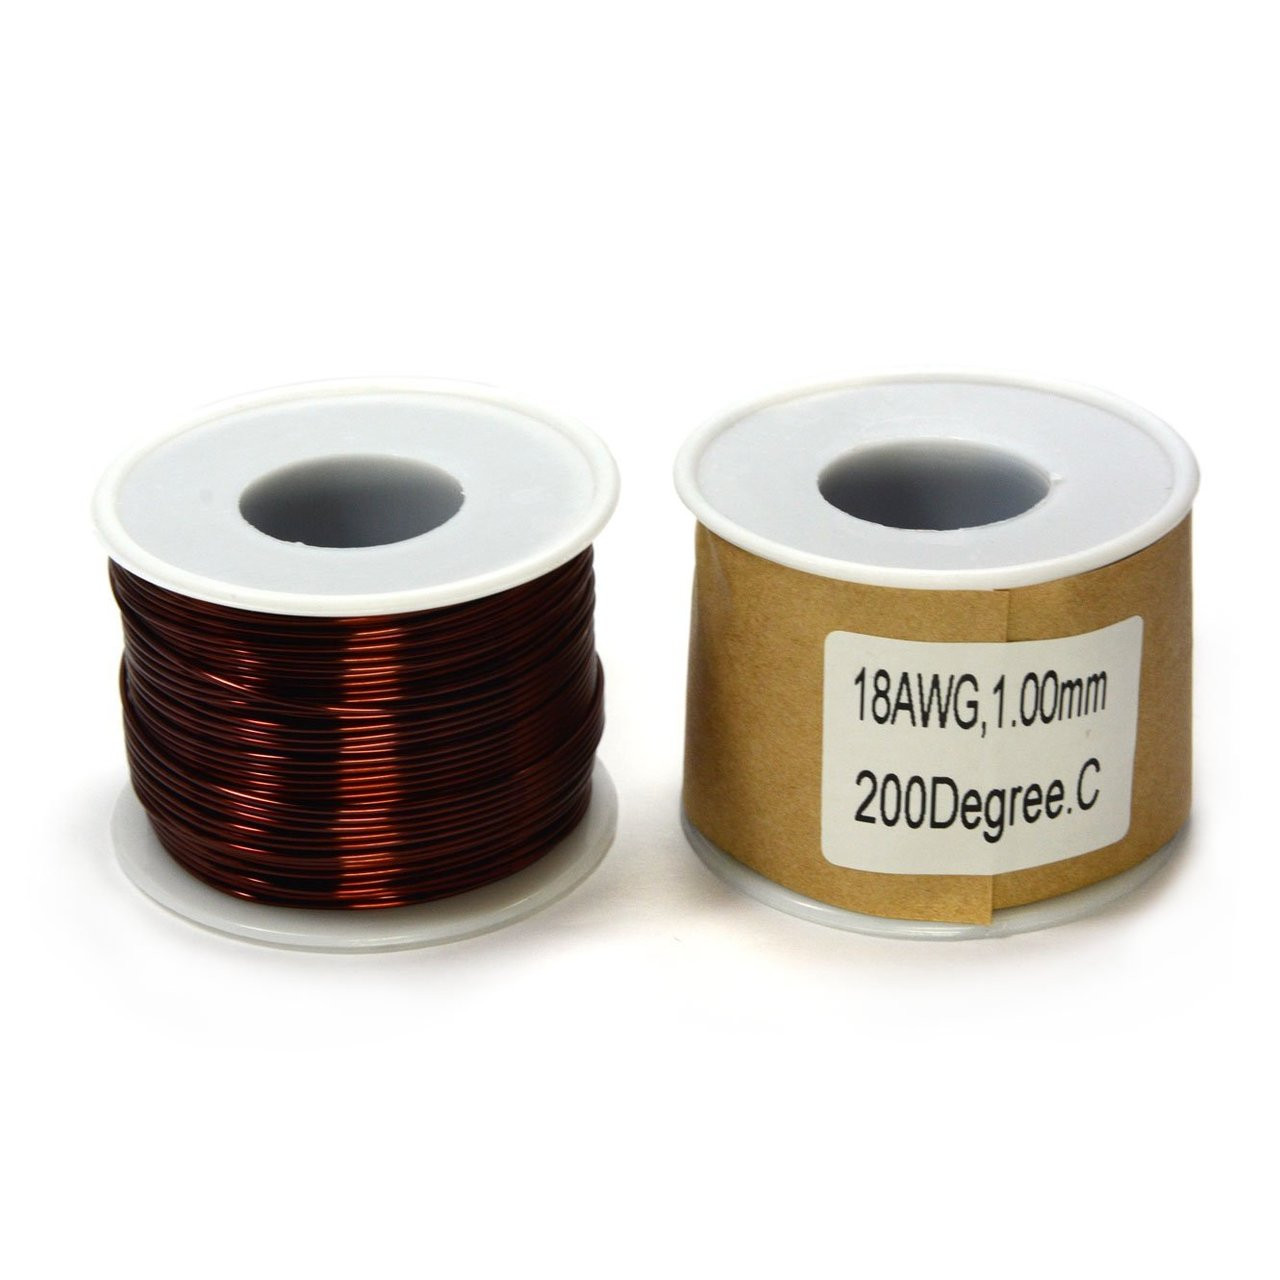 Magnet wire 1Lb Spool of 18 AWG Magnet Wire (MW-18AWG-1)